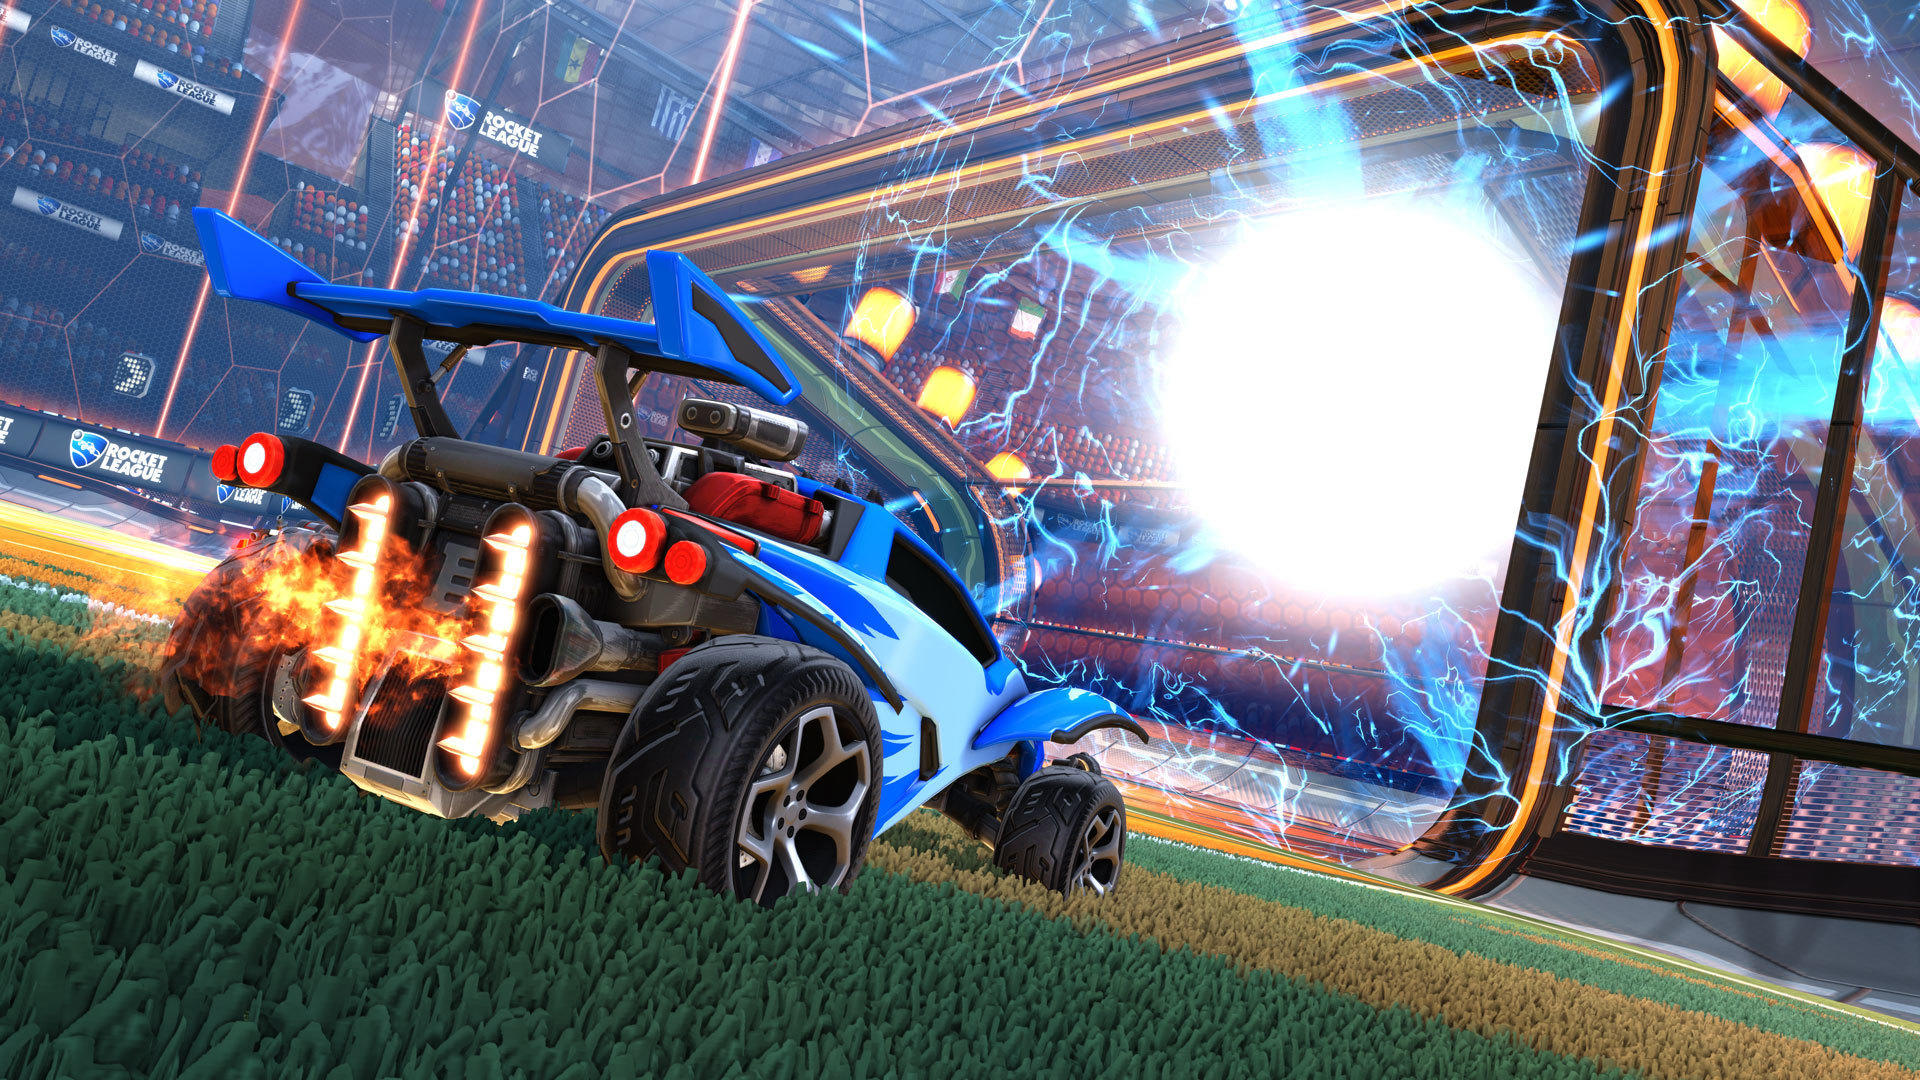 rocket-league-neu-bei-den-germanmonkeys